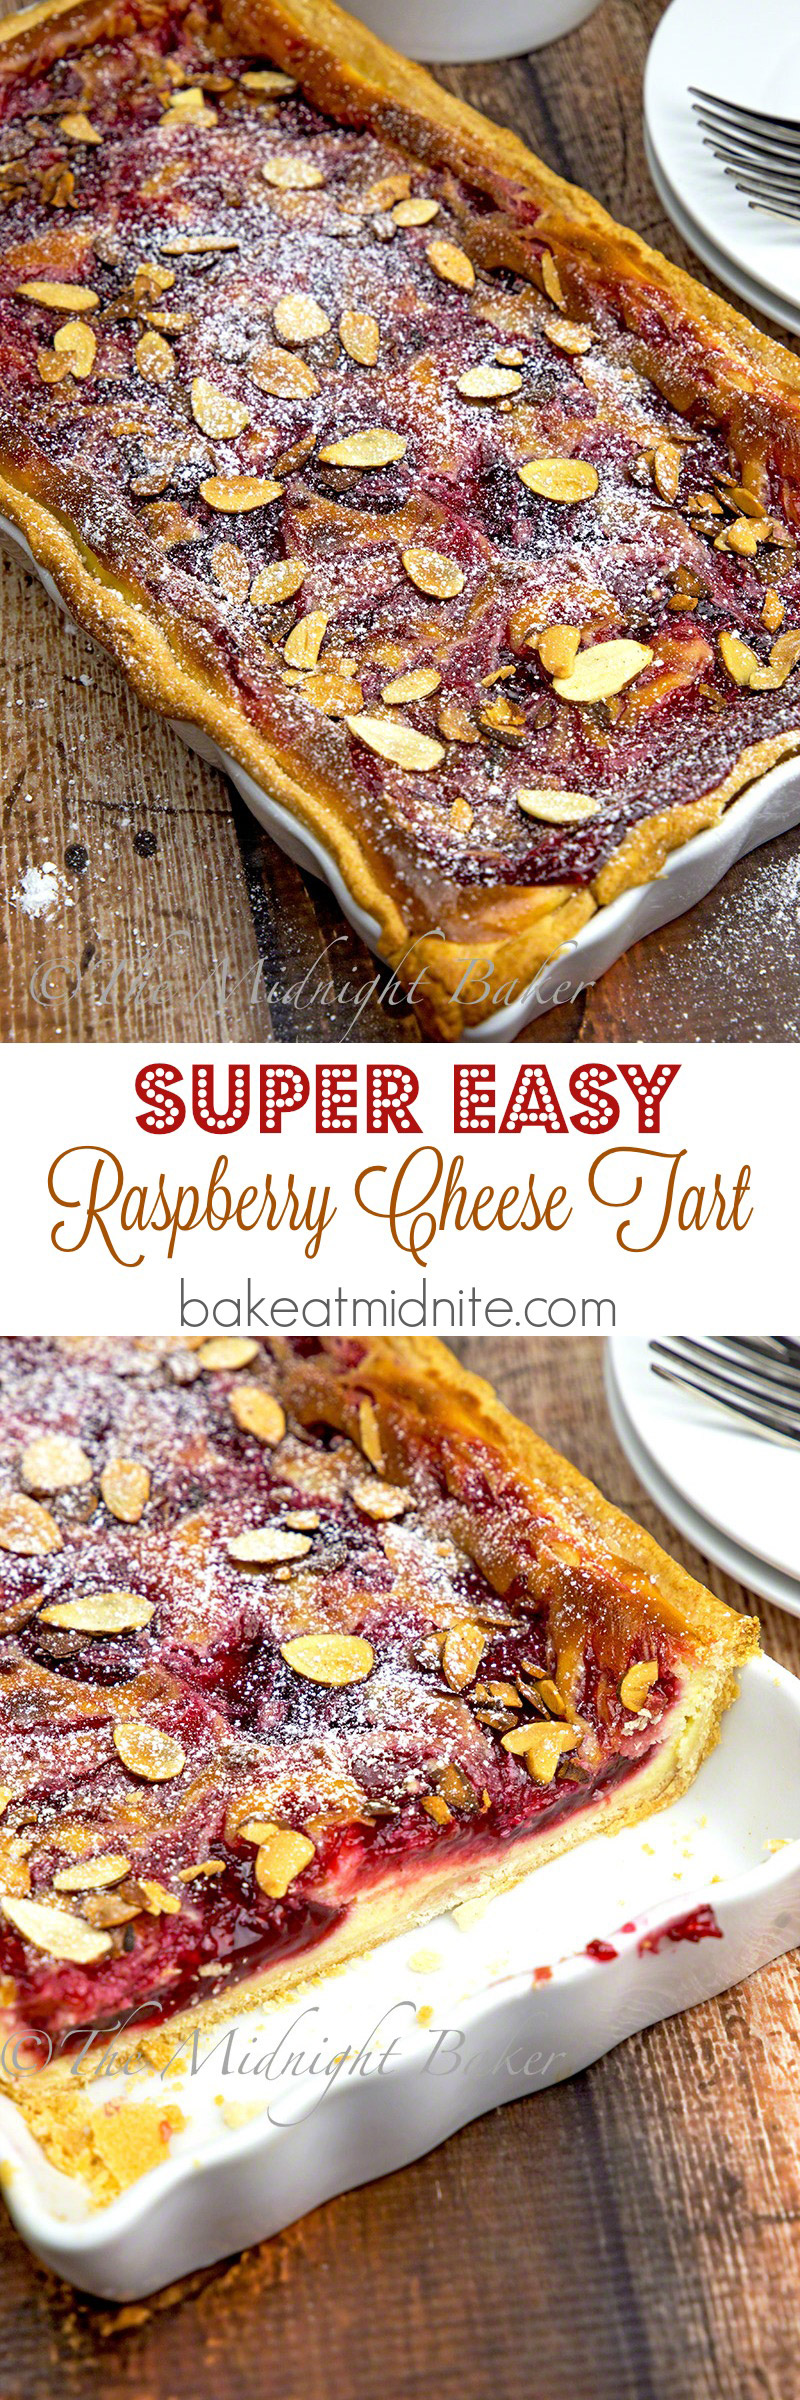 Raspberry Cheese Tart